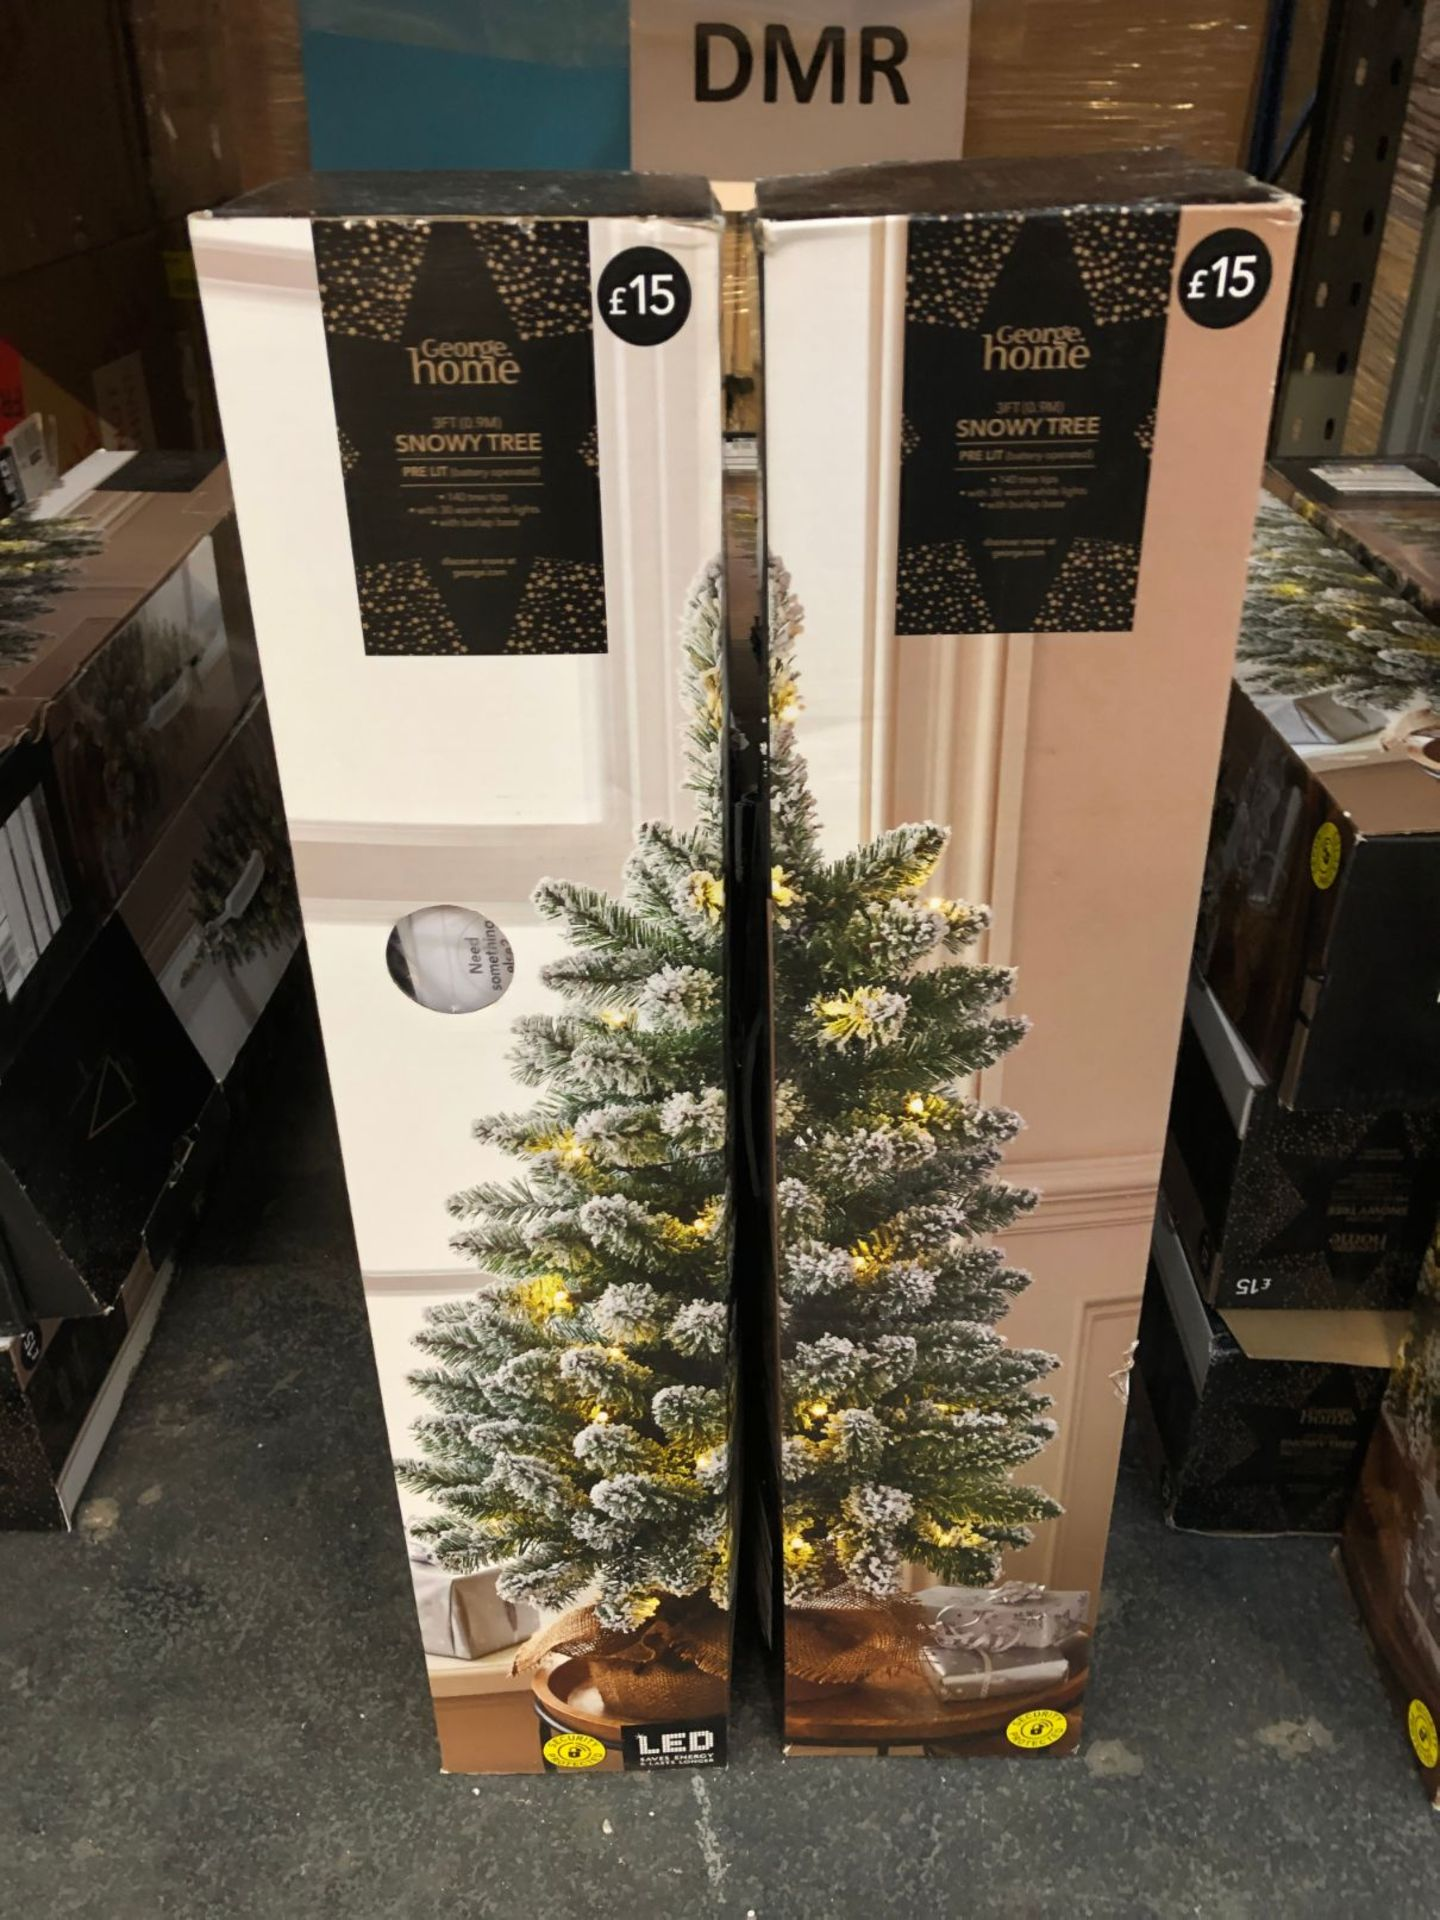 8 PRE-LIT SNOWY 3FT CHRISTMAS TREES / COMBINED RRP £120.00 / CUSTOMER RETURNS (IMAGES ARE FOR